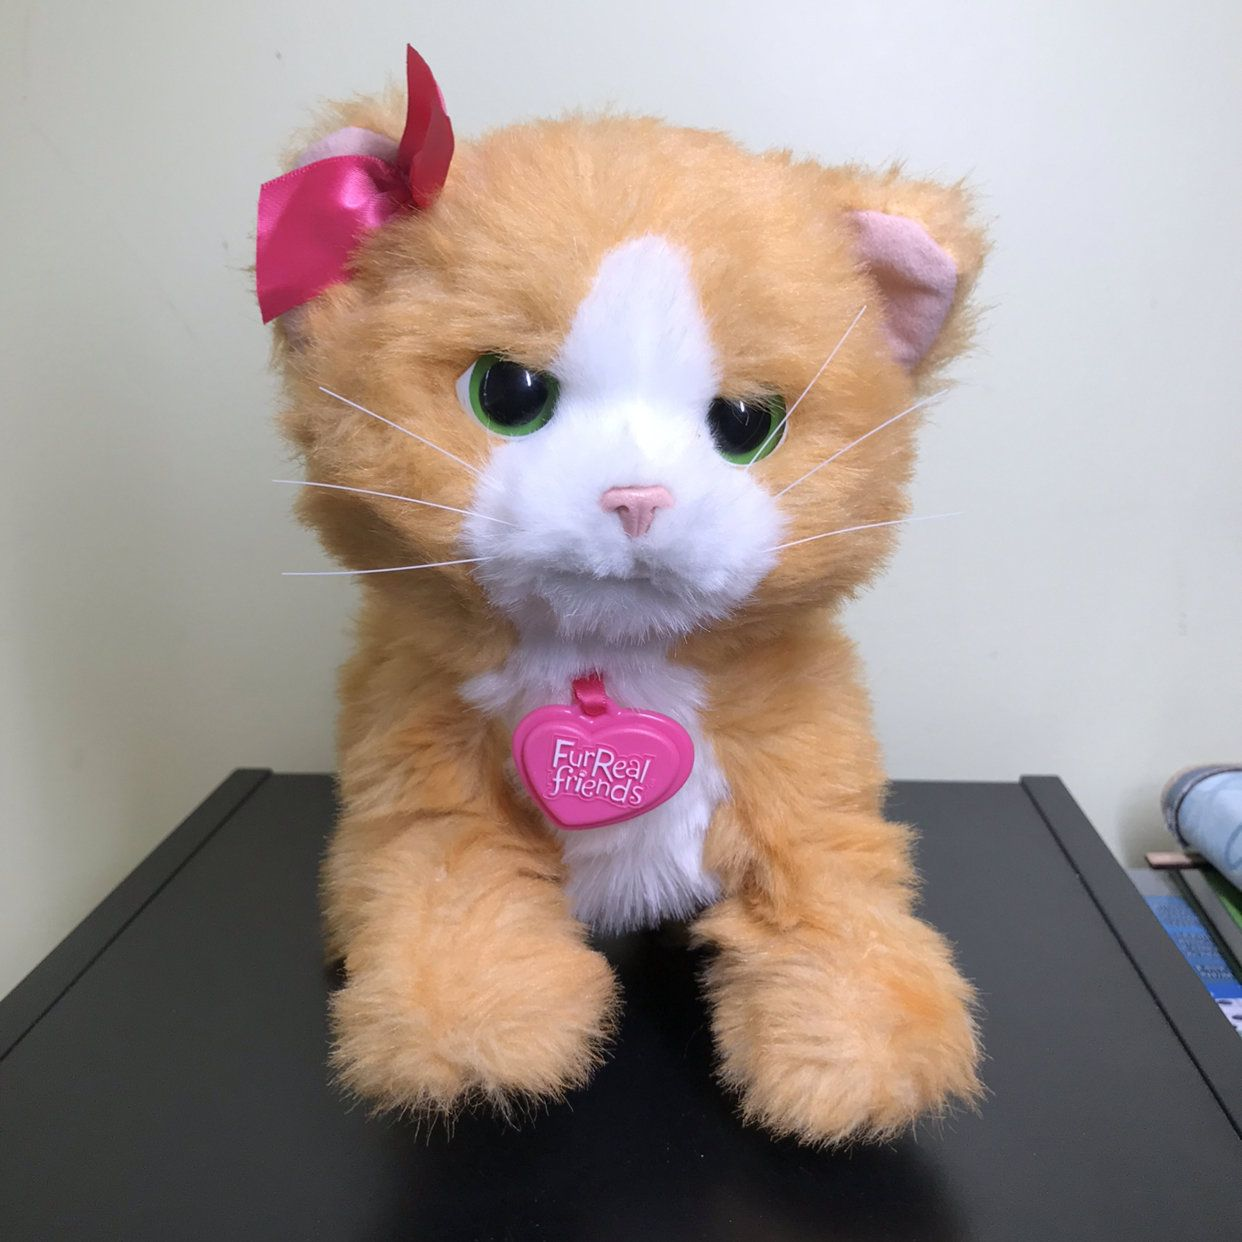 Furreal Friends Daisy Plays With Me Kitty In 2020 Fur Real Friends Kitty Pet Toys